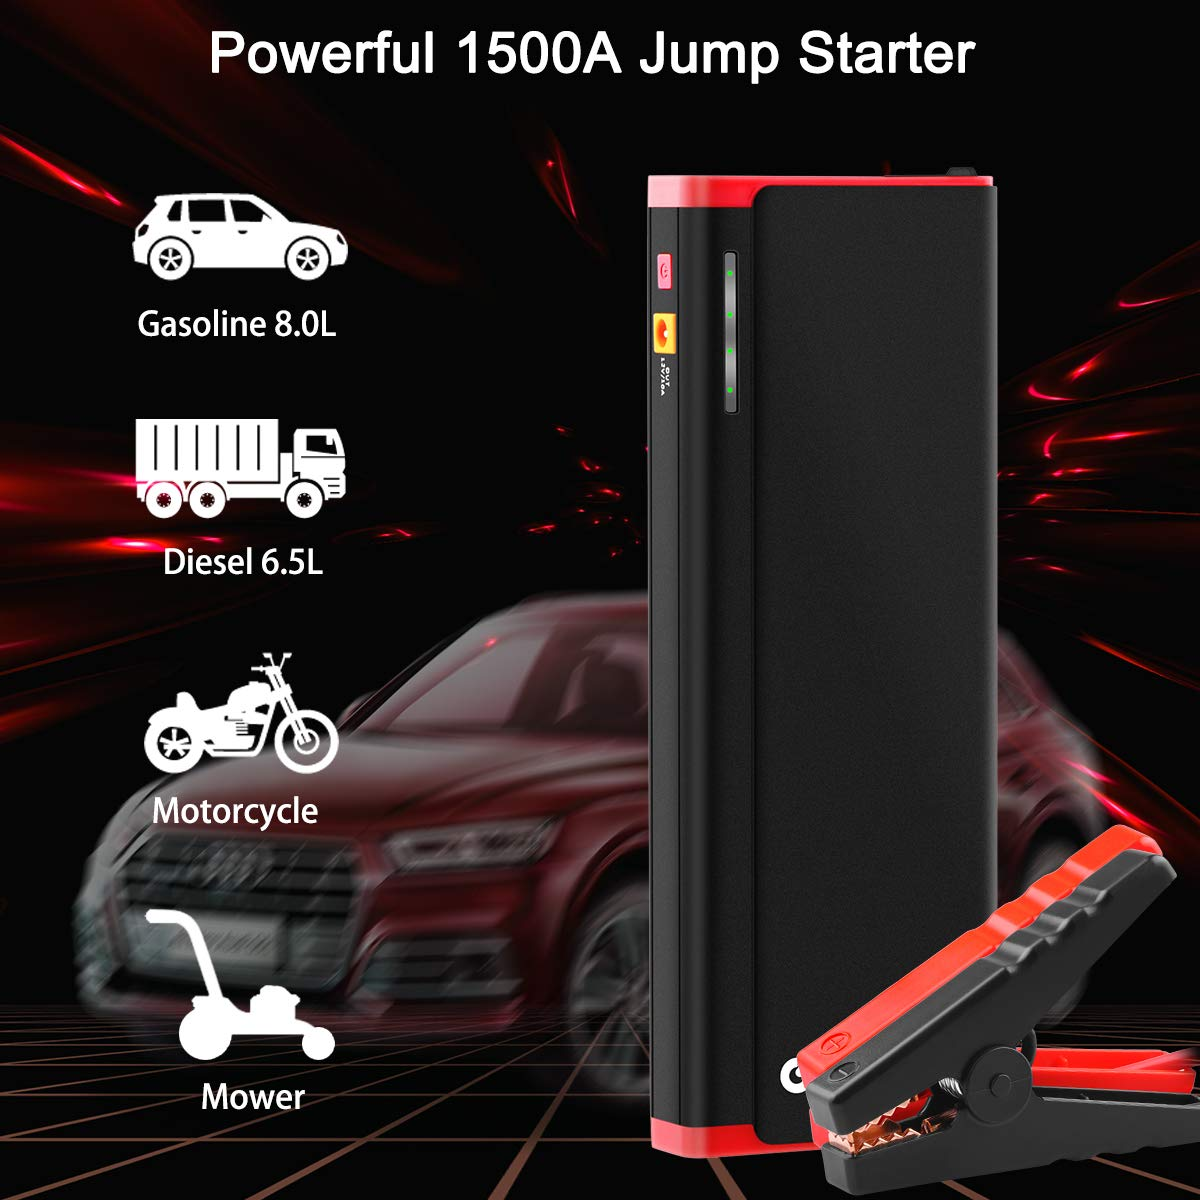 GREPRO Car Battery Jump Starter 1500A Peak 21000mAh Portable Jump Pack Aluminum Alloy Shell 12V Auto Battery Booster up to 8.0L Gas, 6.5L Diesel USB Quick Charge Power Pack with LED Light